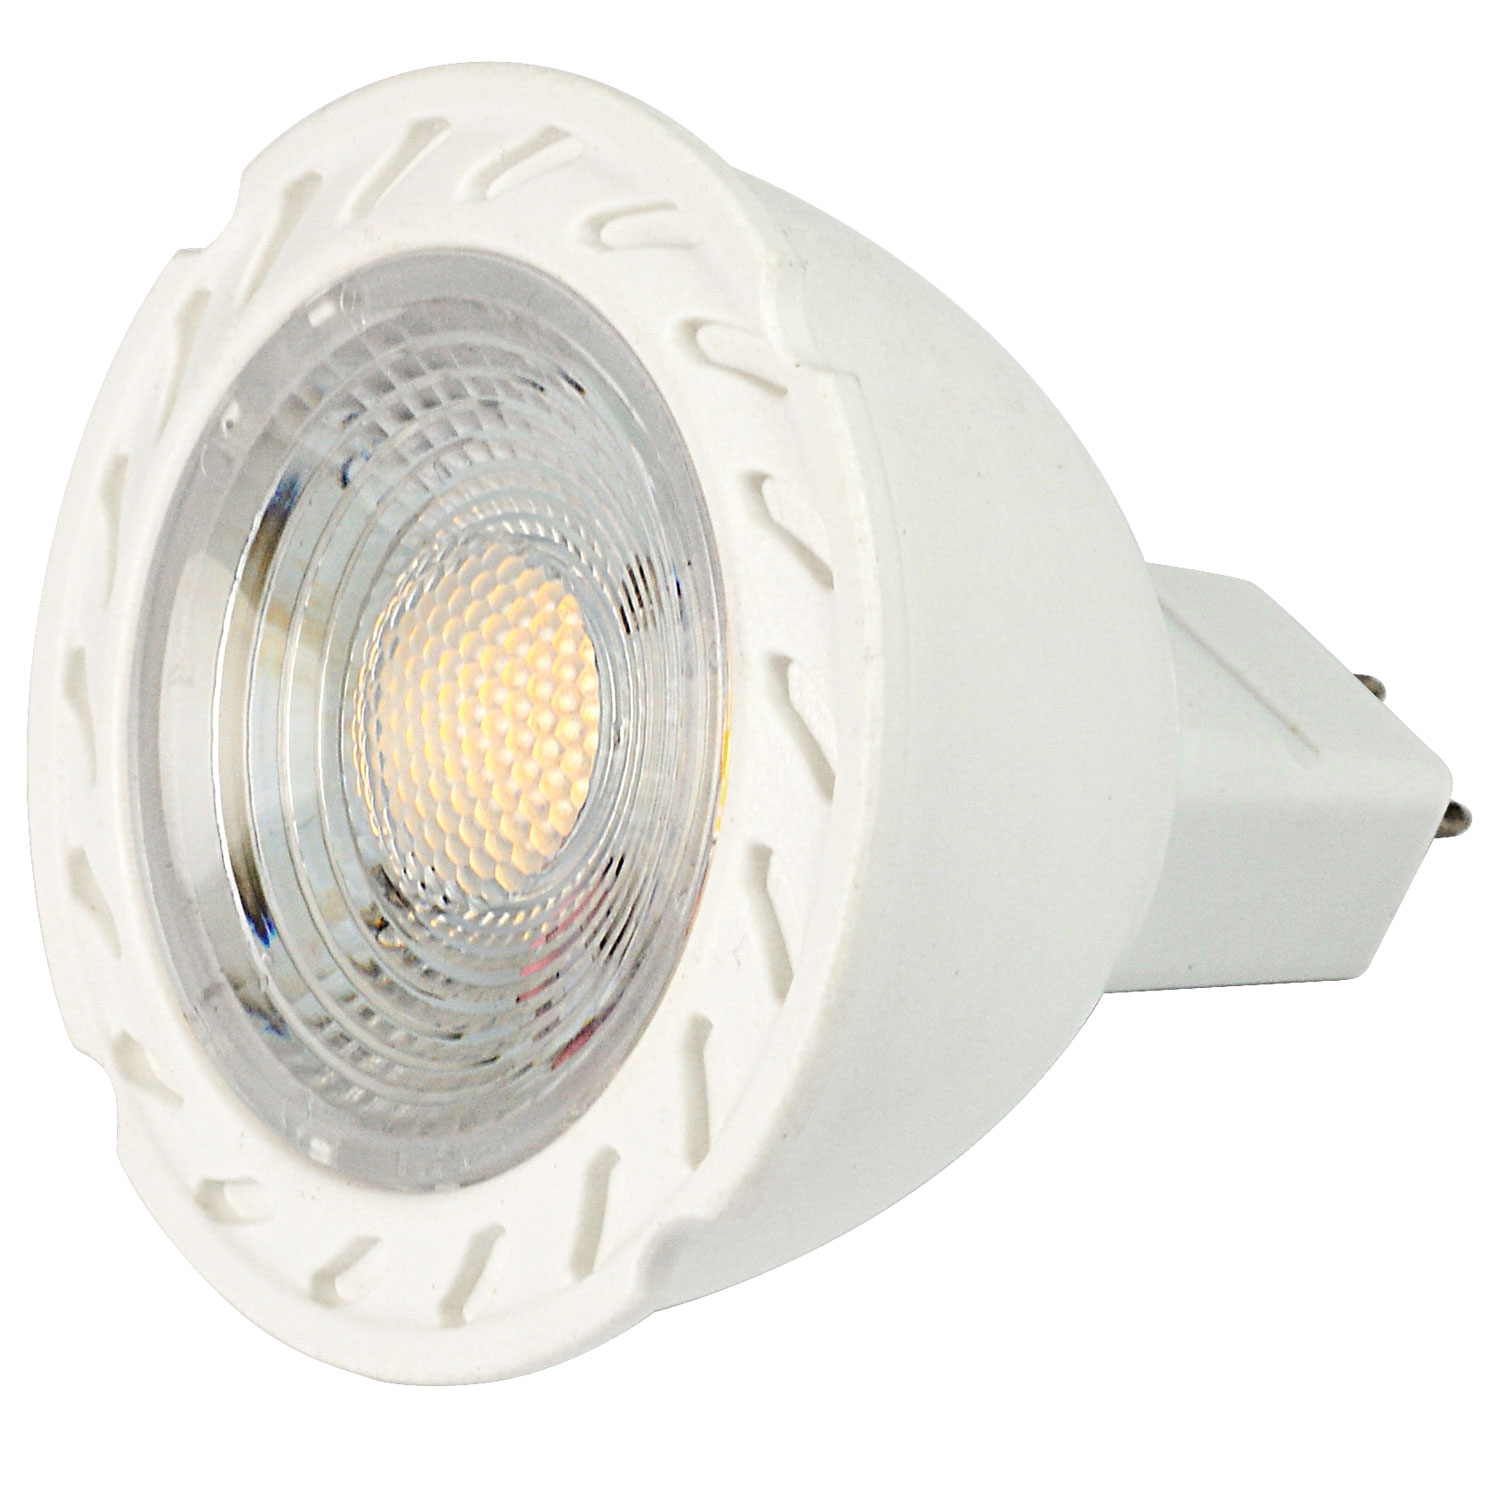 Mengsled Mengs Mr16 5w Led Spotlight 6x 2835 Smd Led Bulb Lamp In Warm Cool White Energy